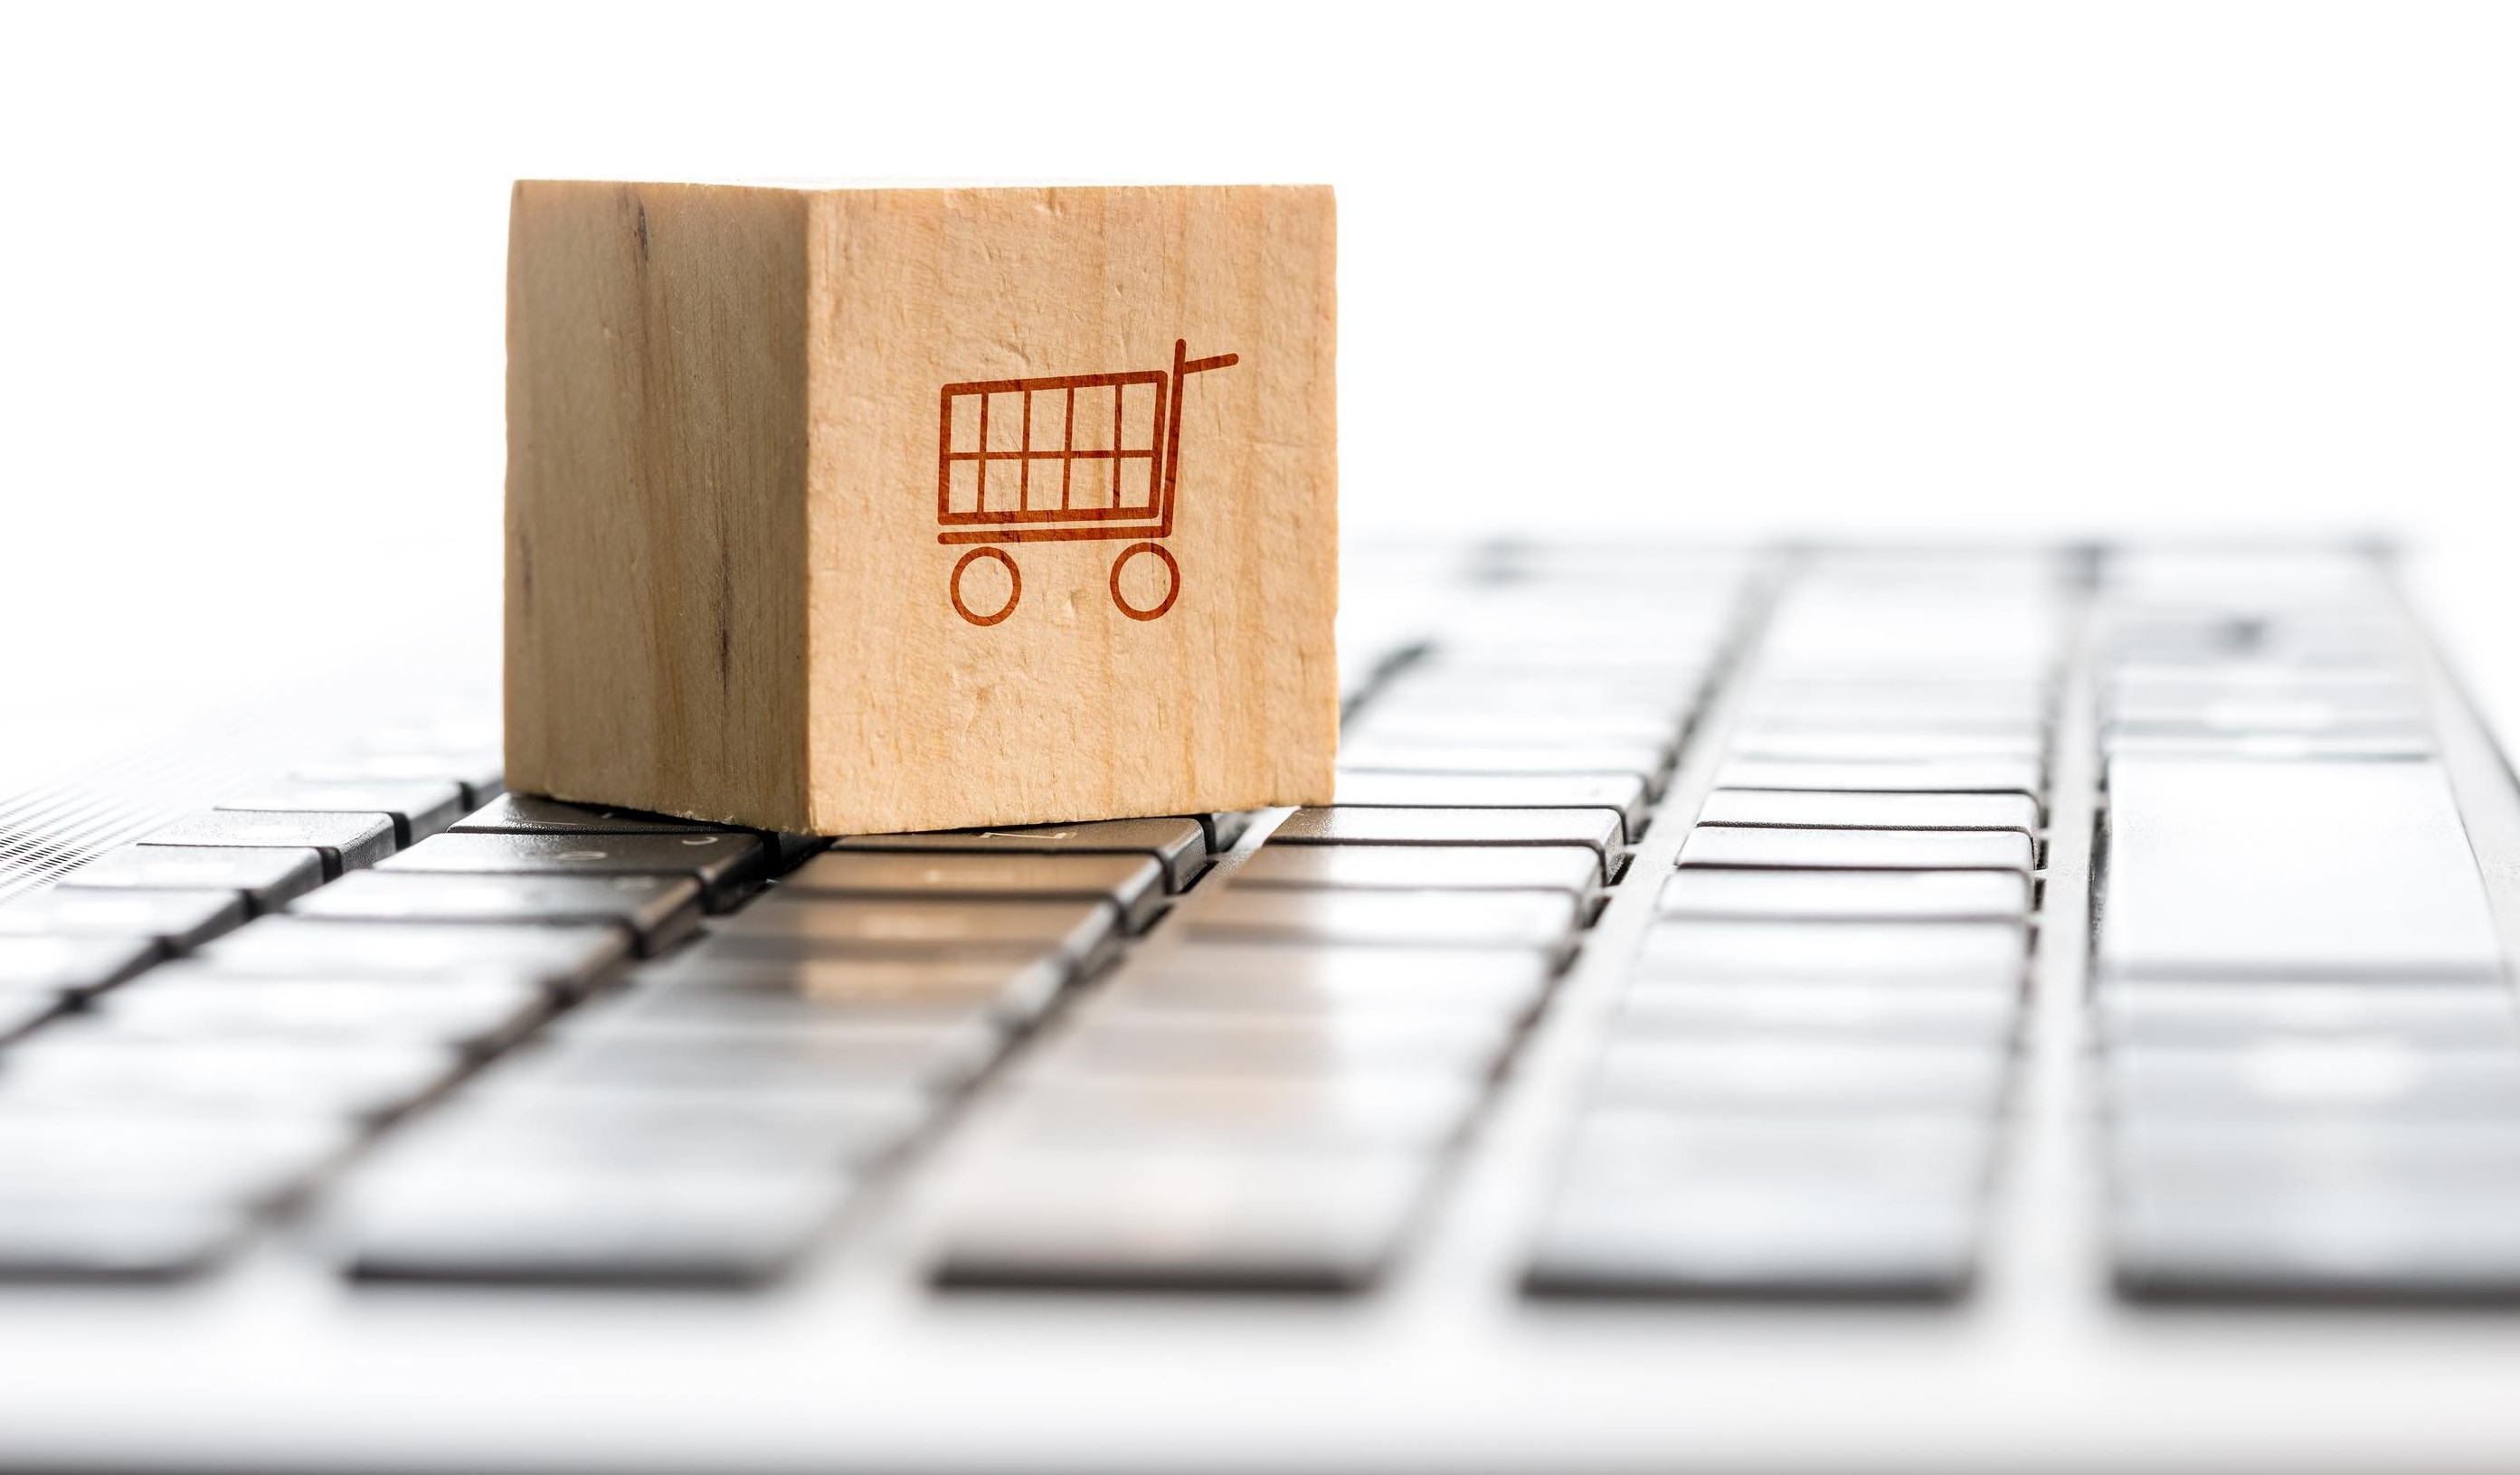 Online shopping and e-commerce concept with a wooden block with an icon of a shopping cart standing on a computer keyboard viewed low angle with copyspace.